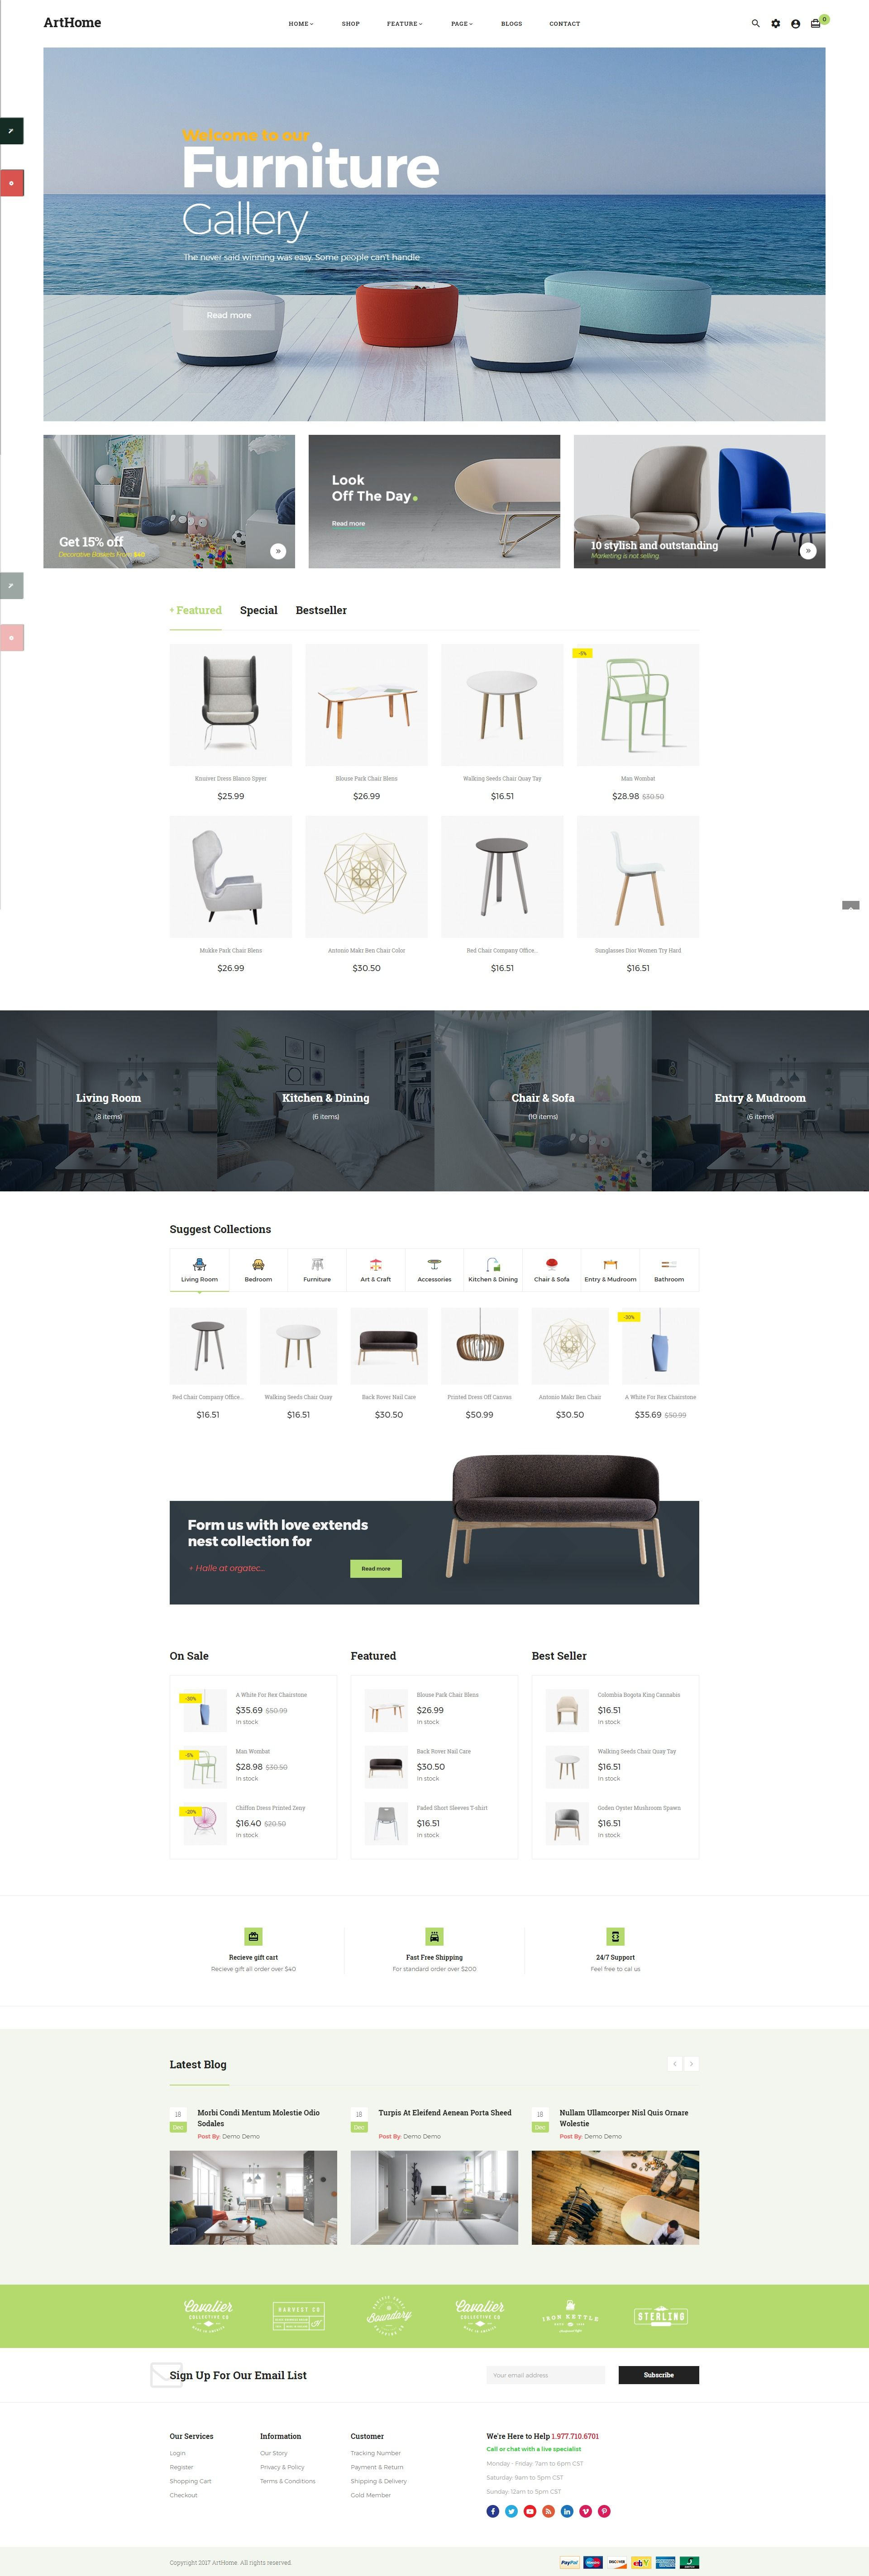 Pts - ArtHome - PrestaShop Furniture Theme Screenshot 3